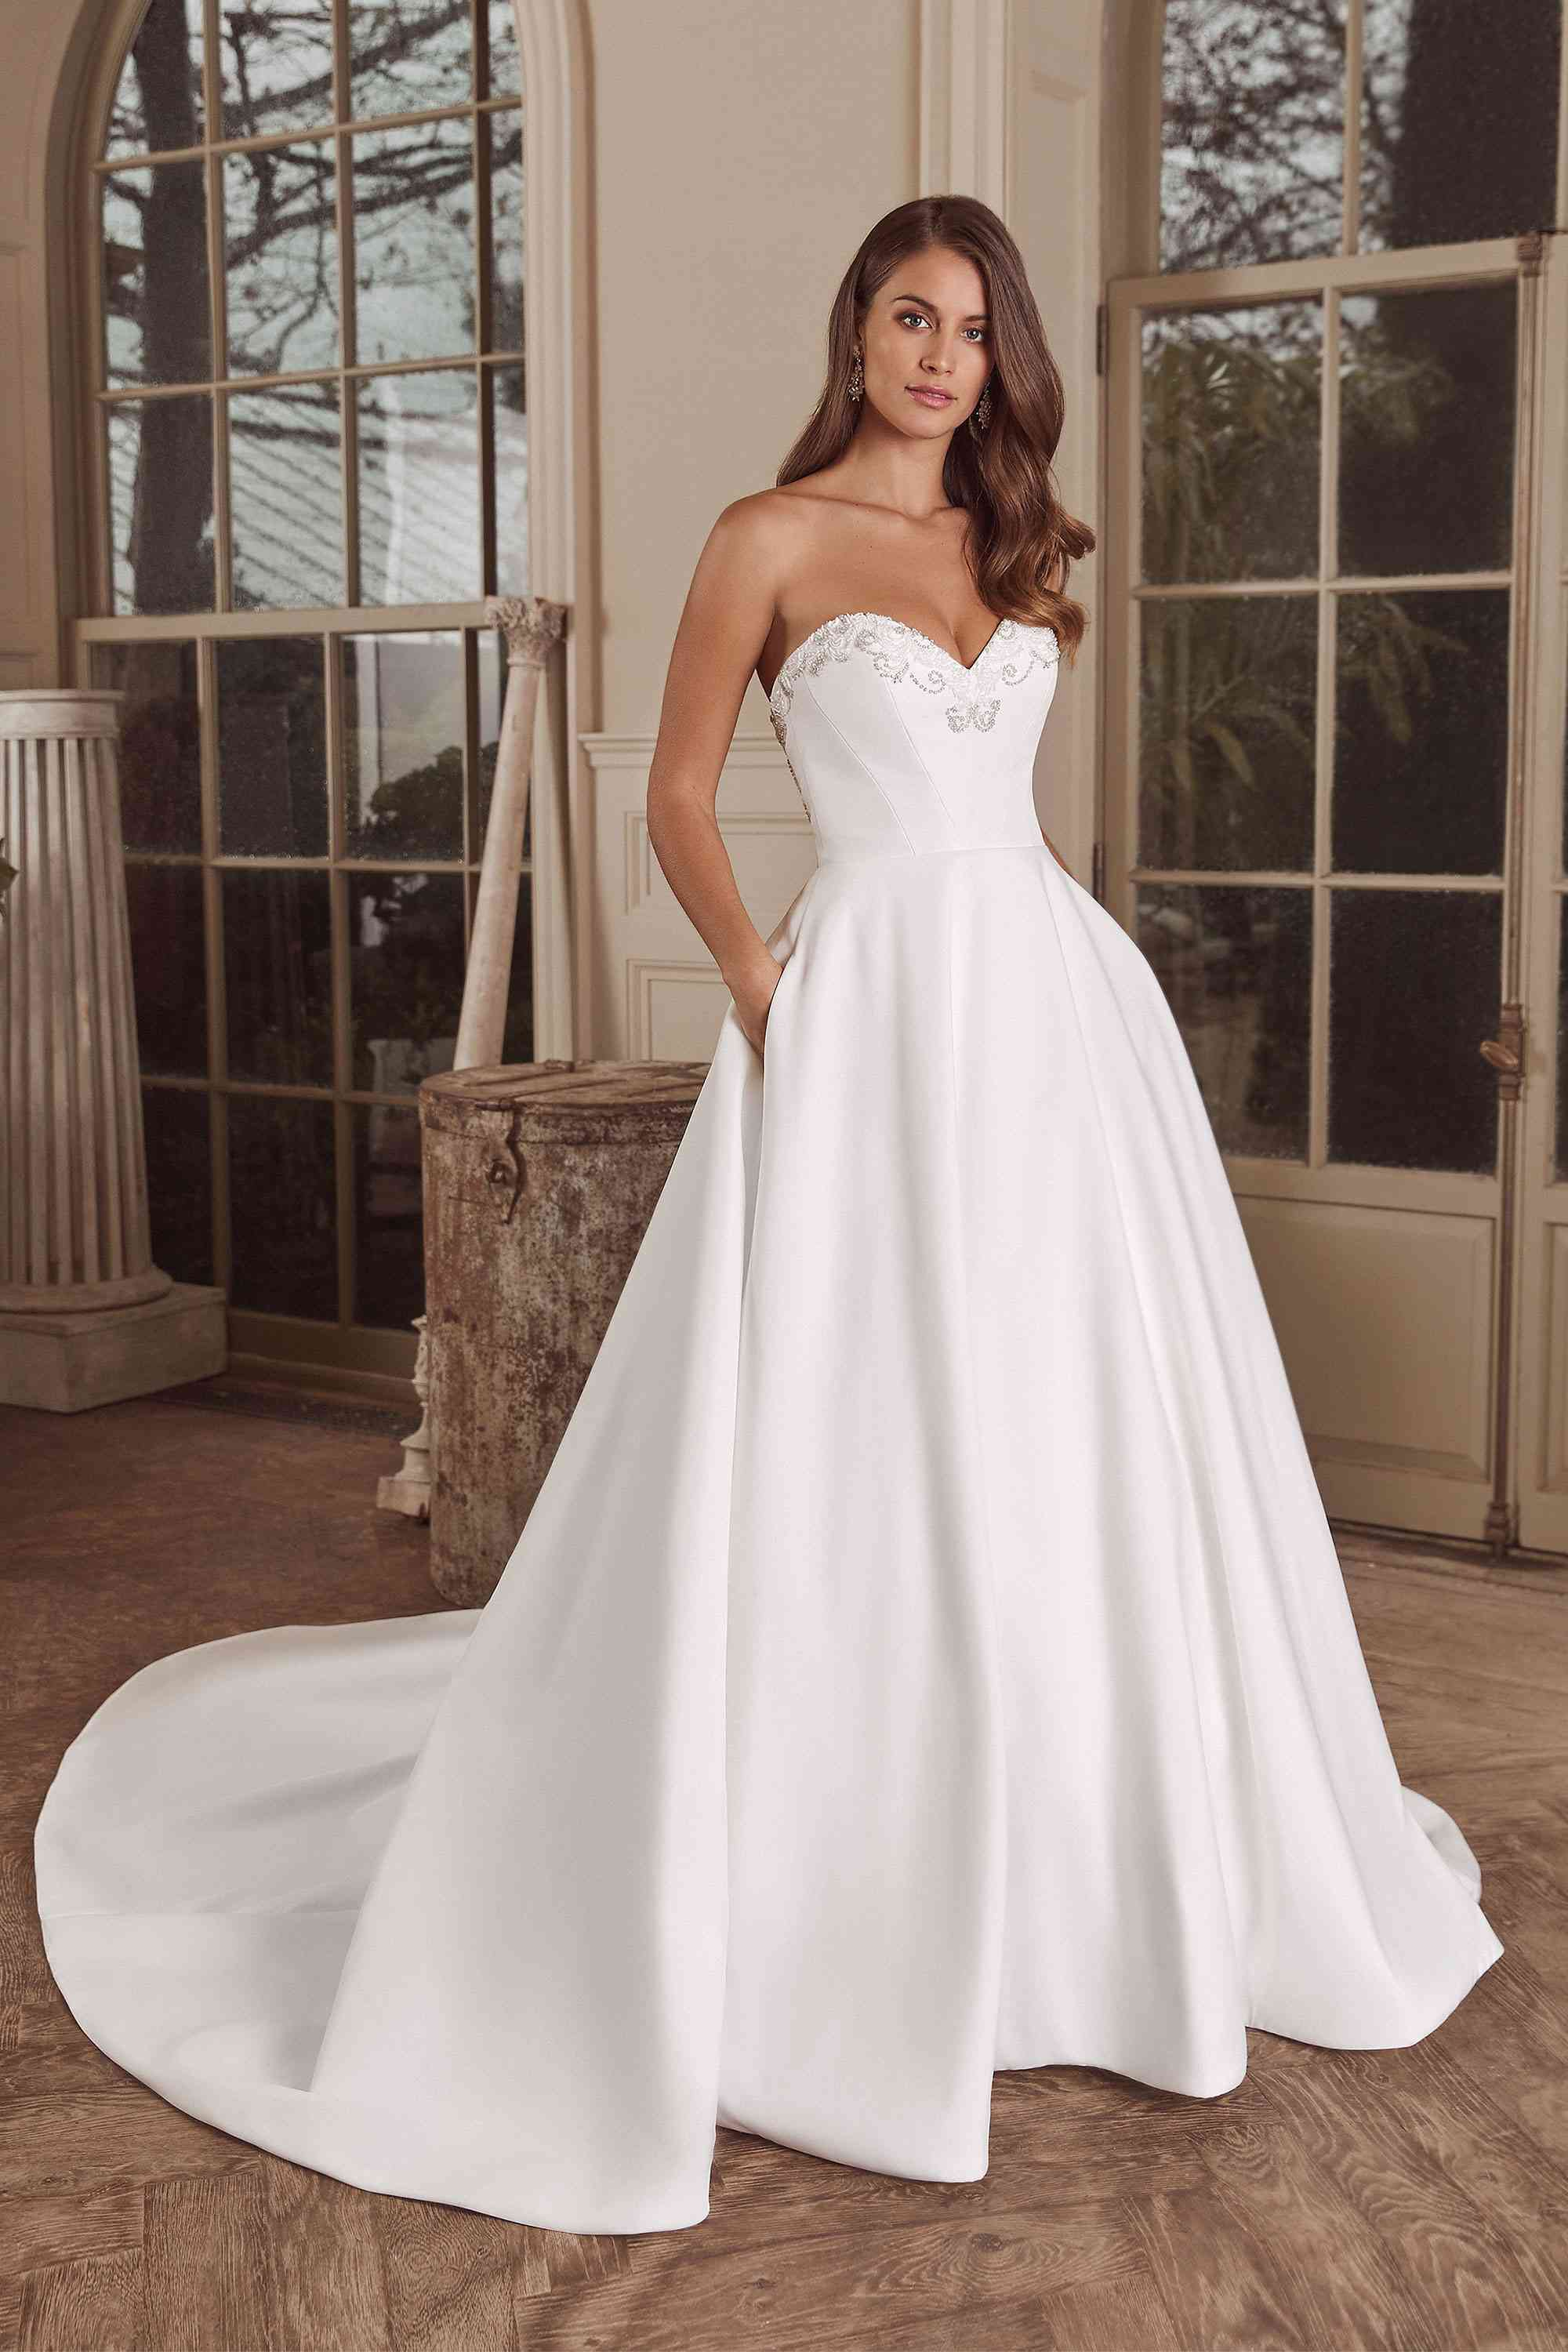 Model in white ball gown with beaded sweetheart neckline and skirt pockets